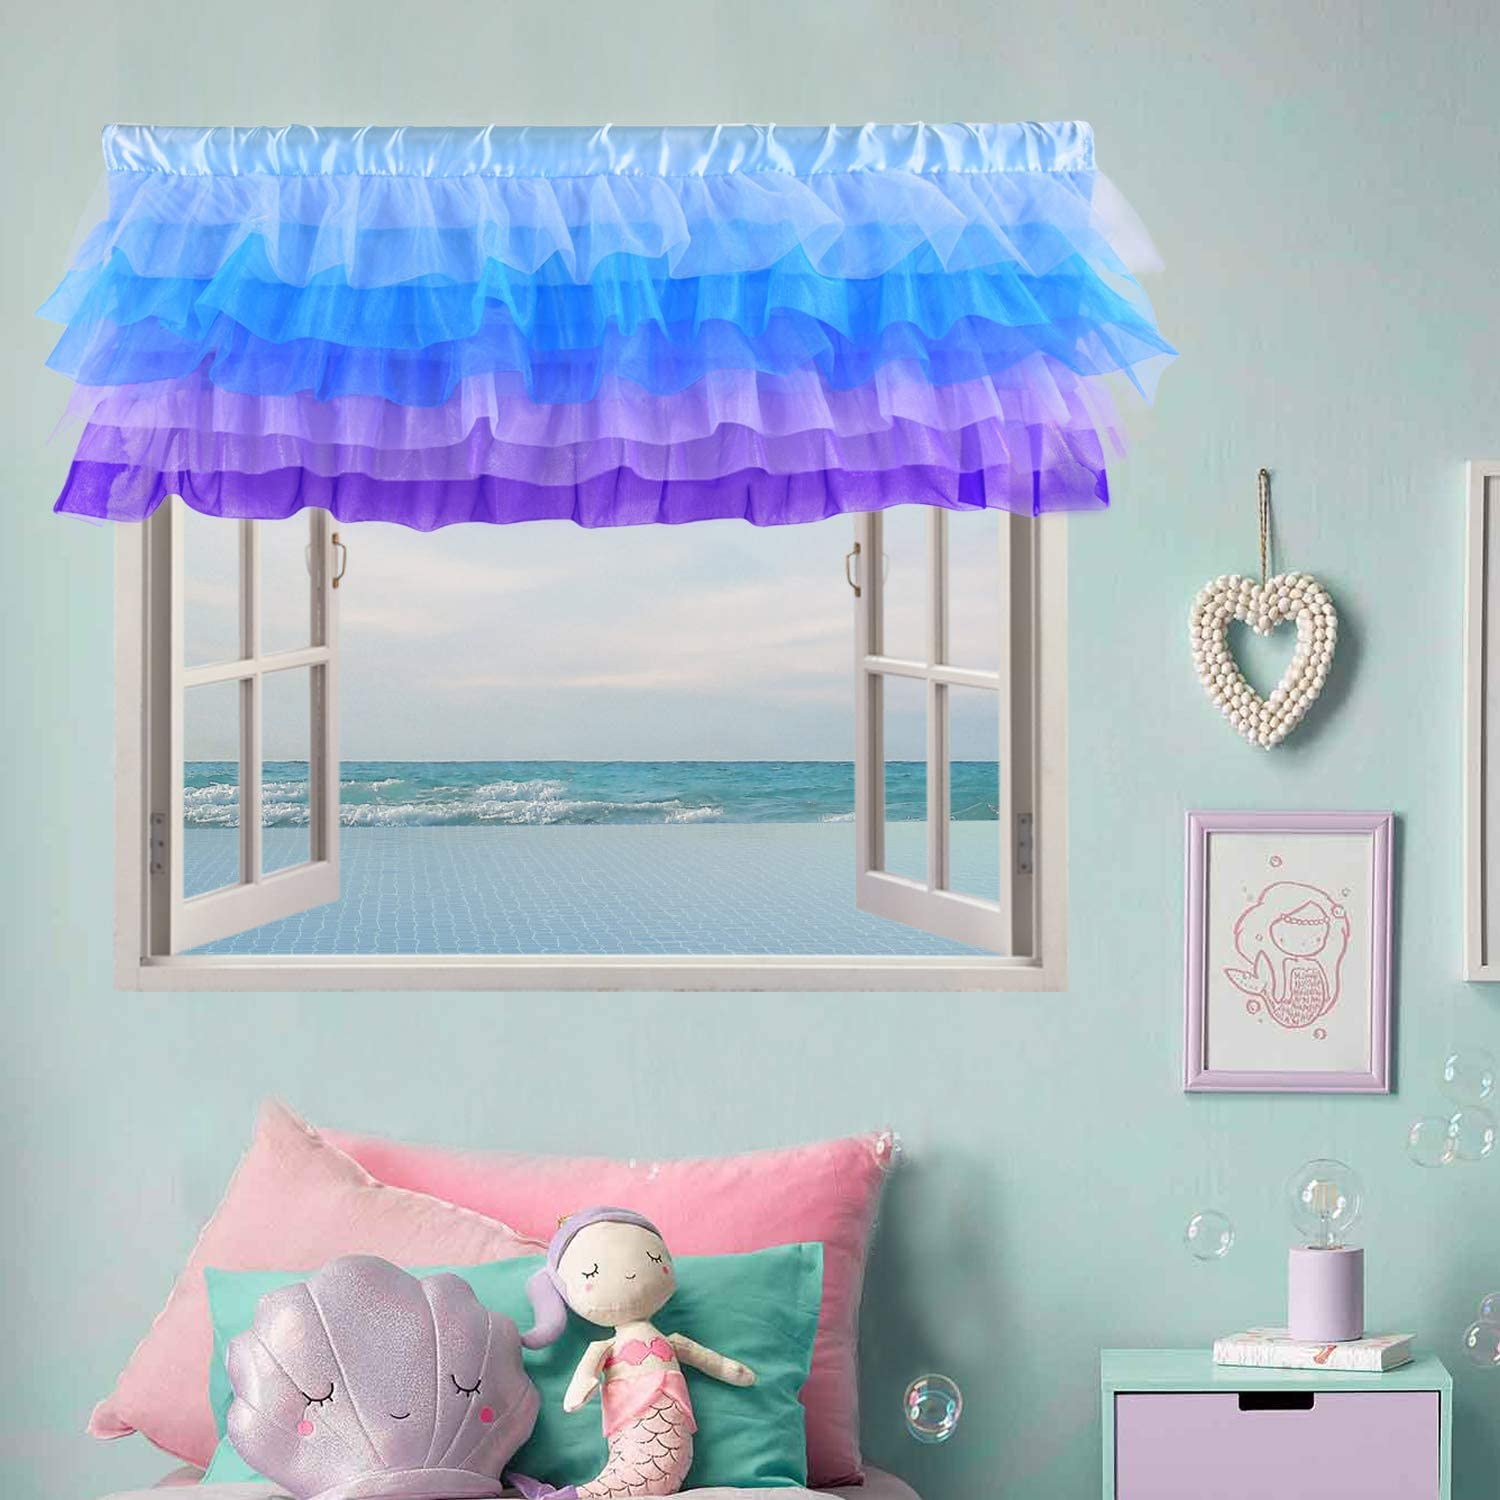 Amazon Com Mermaid Valance Curtains Frozen For Girls Bedroom Windows Baby Kids Nursery Room Purple Blue 52 16 Inch Kitchen Dining